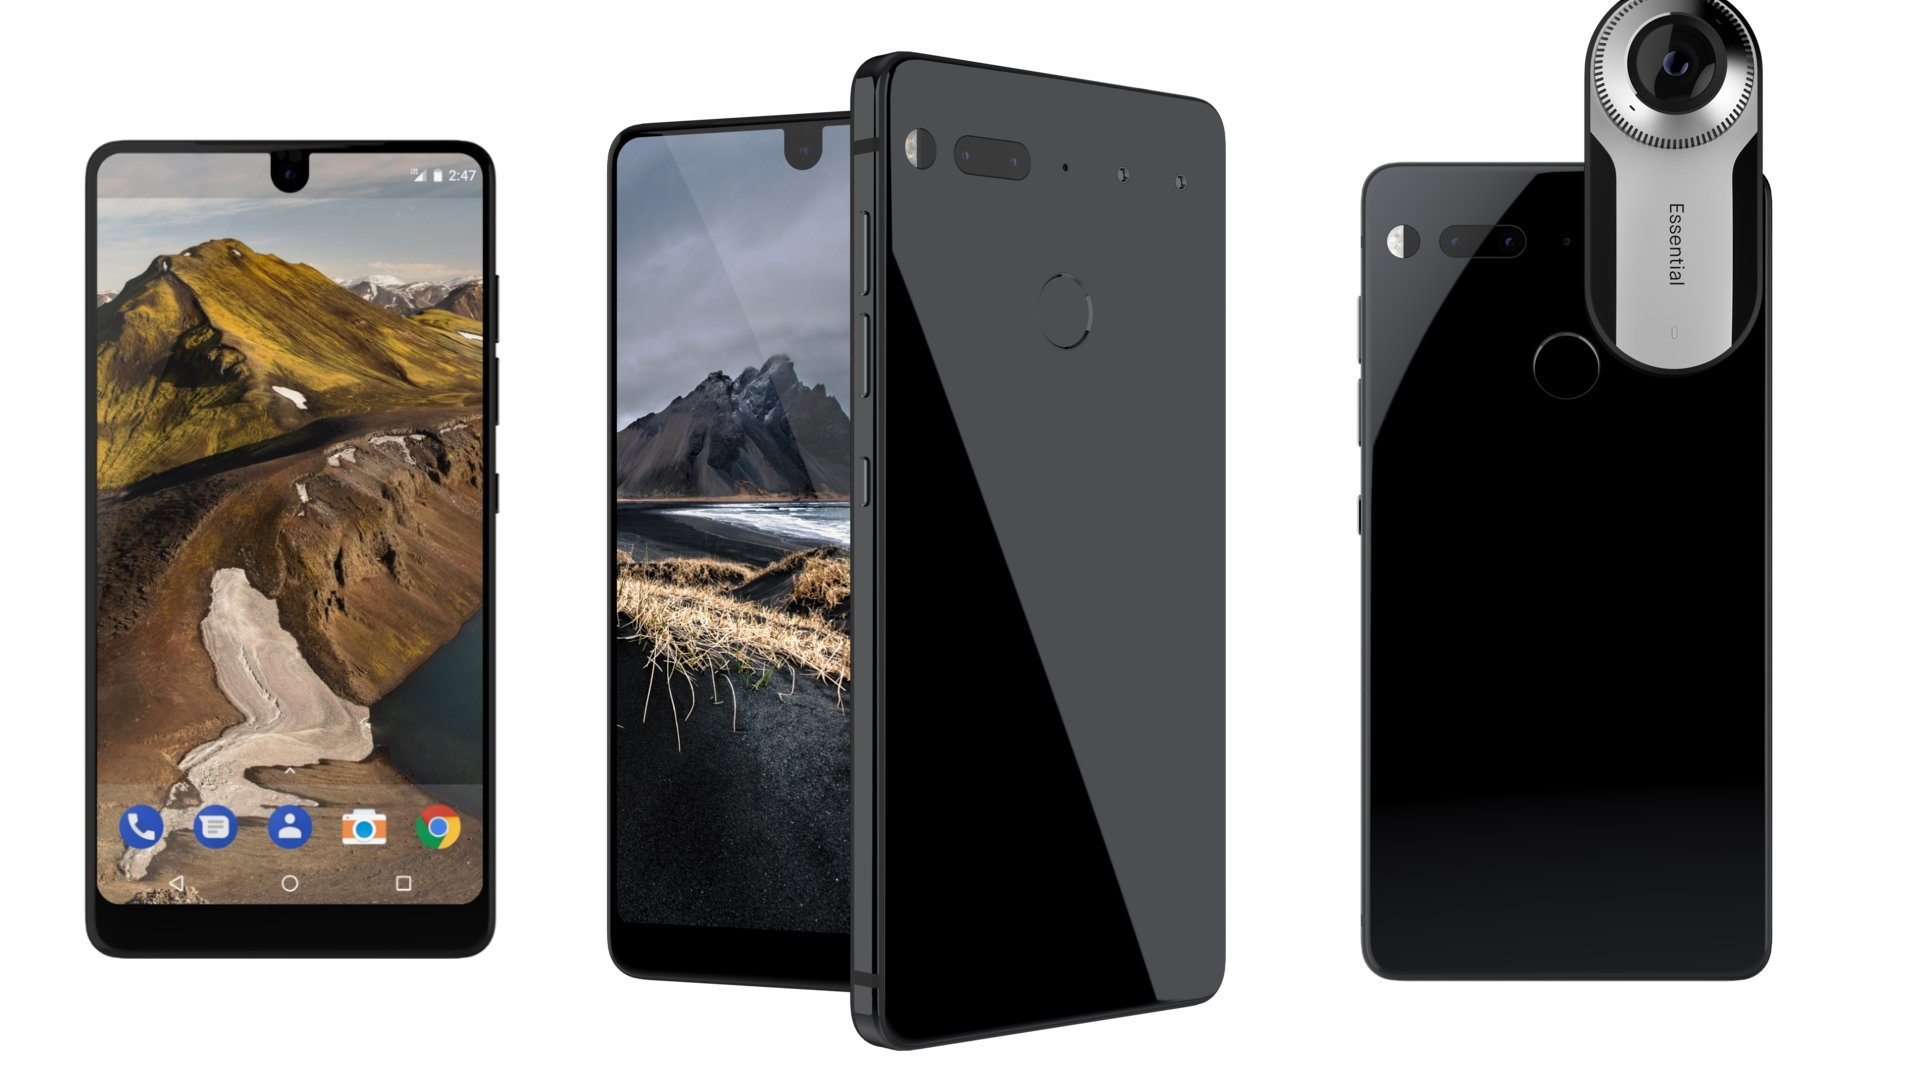 The Essential Phone's Price Reduced to $499